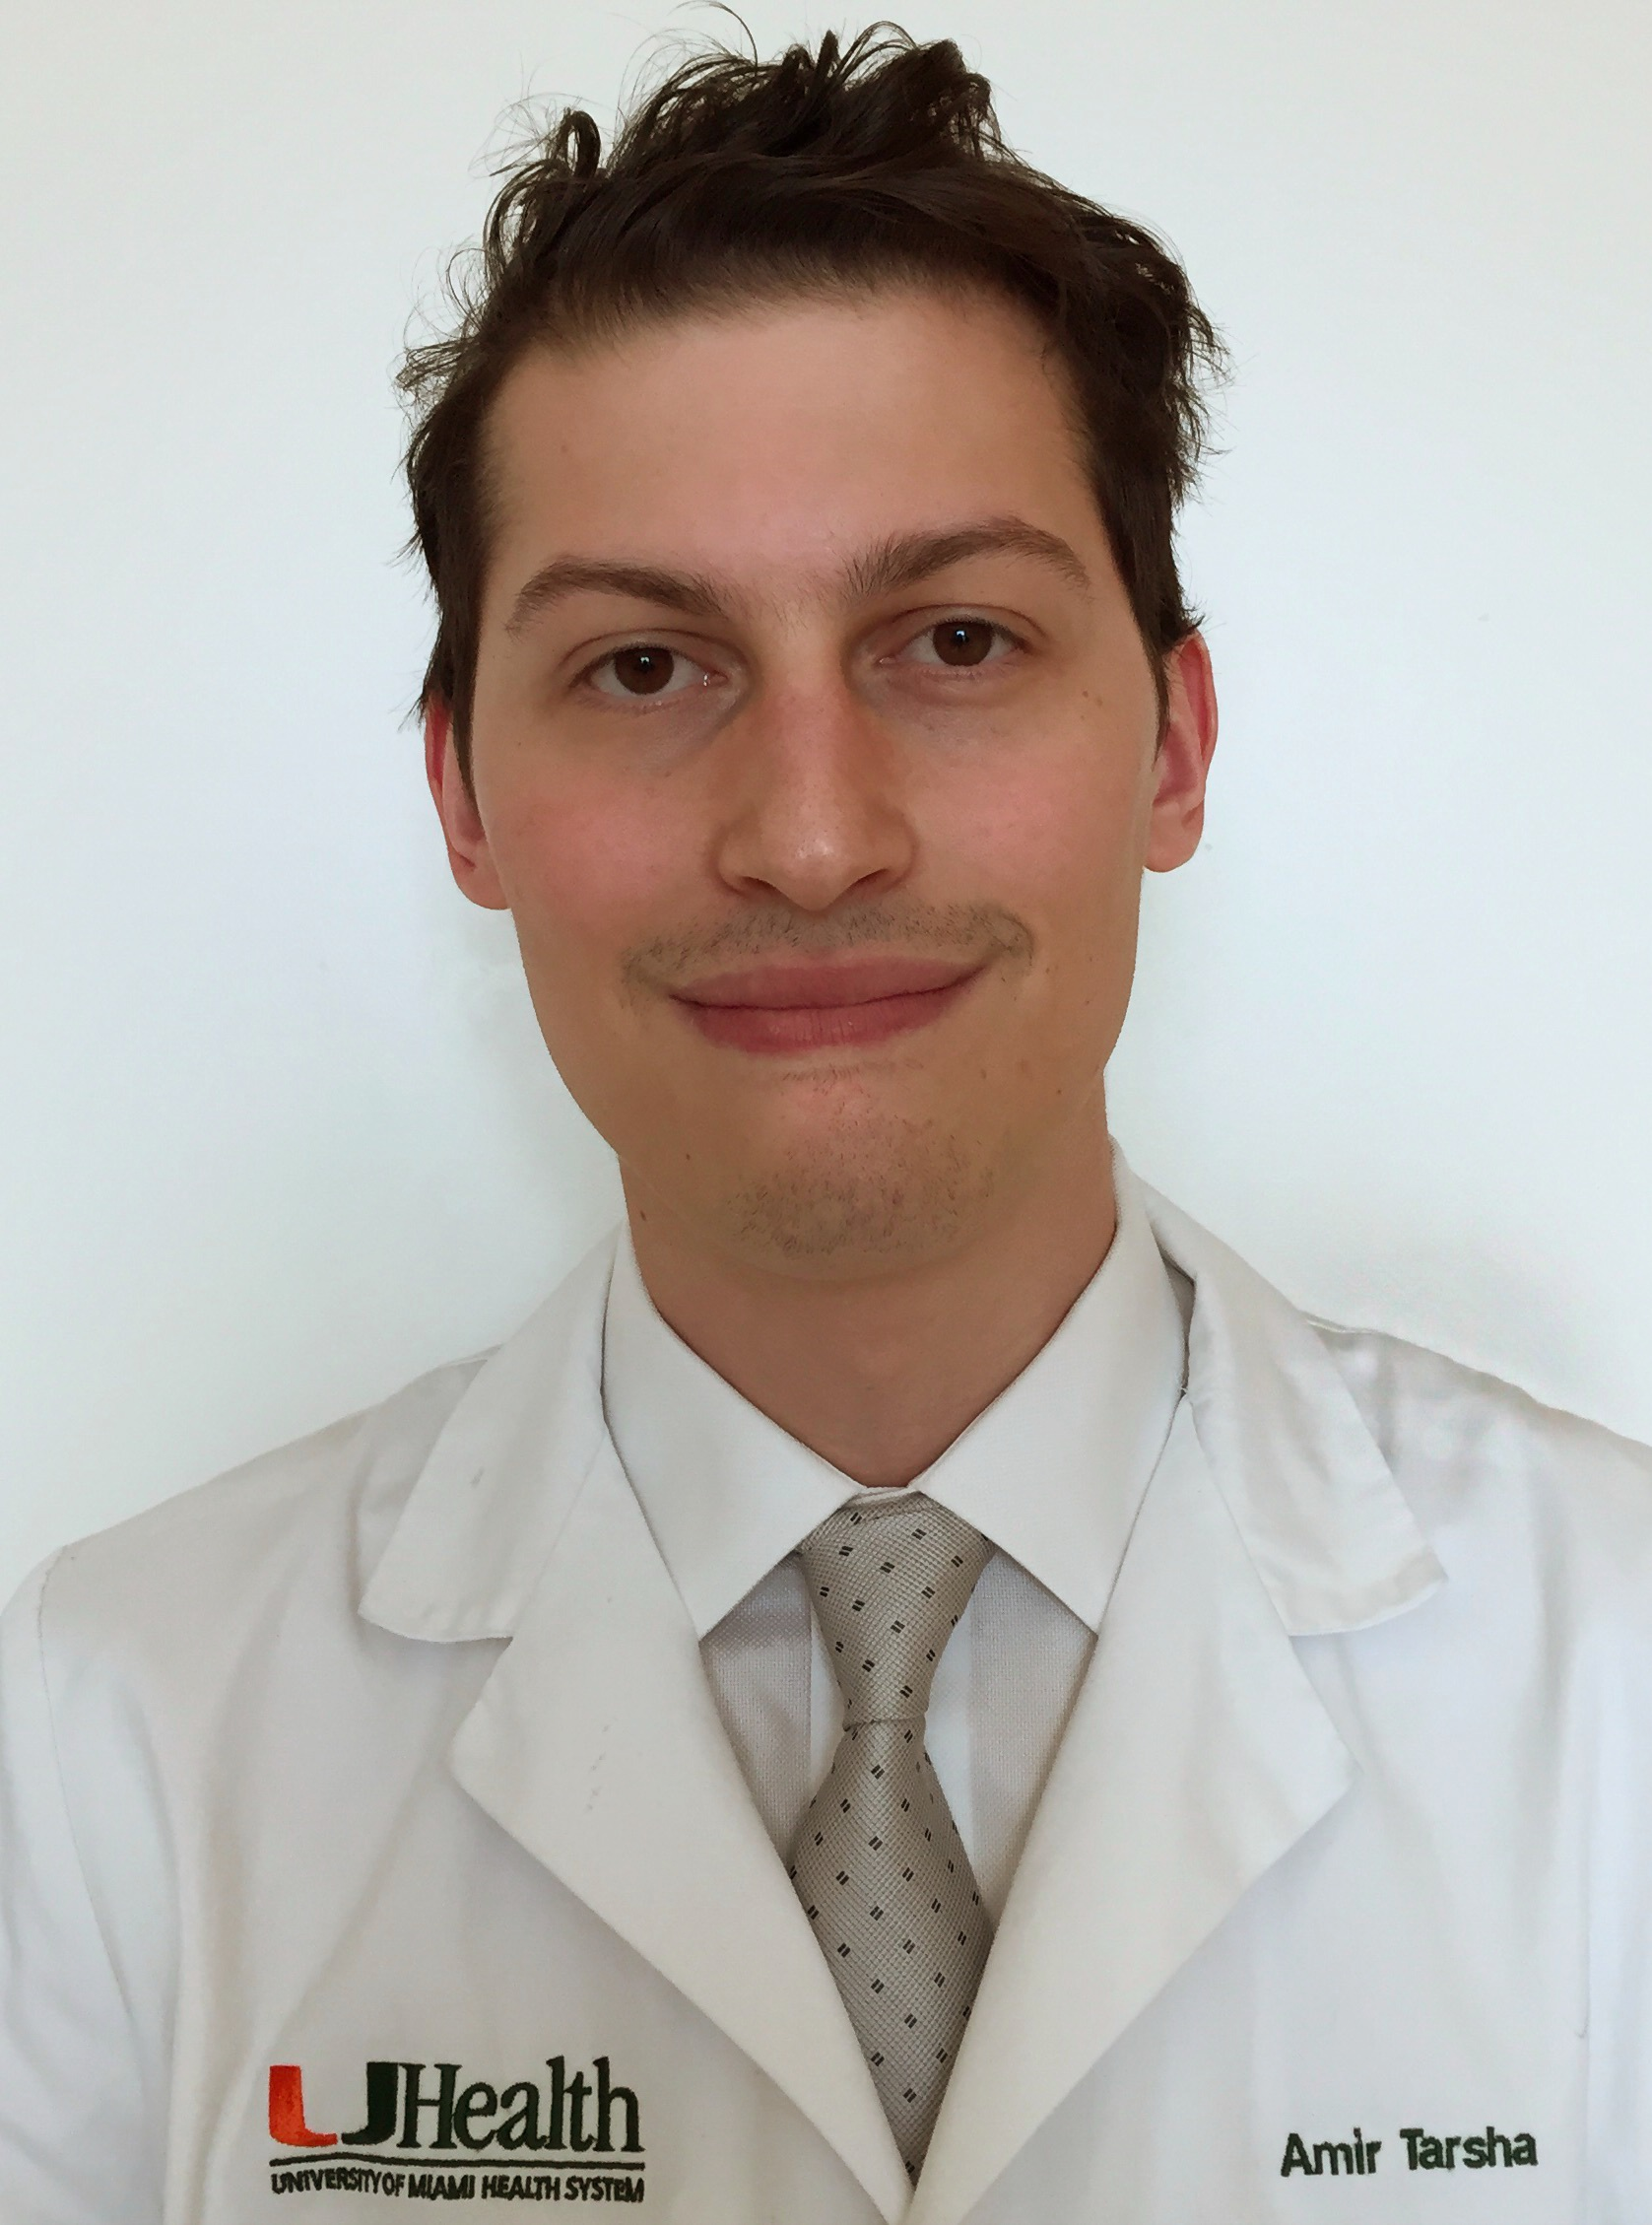 Amir A. Tarsha, who is an editor at the Intima: A Journal of NarrativeMedicine, is completing his M.D. at the University of Miami Miller School of Medicine with a focus in psychiatry, gender identity, and transgender health.